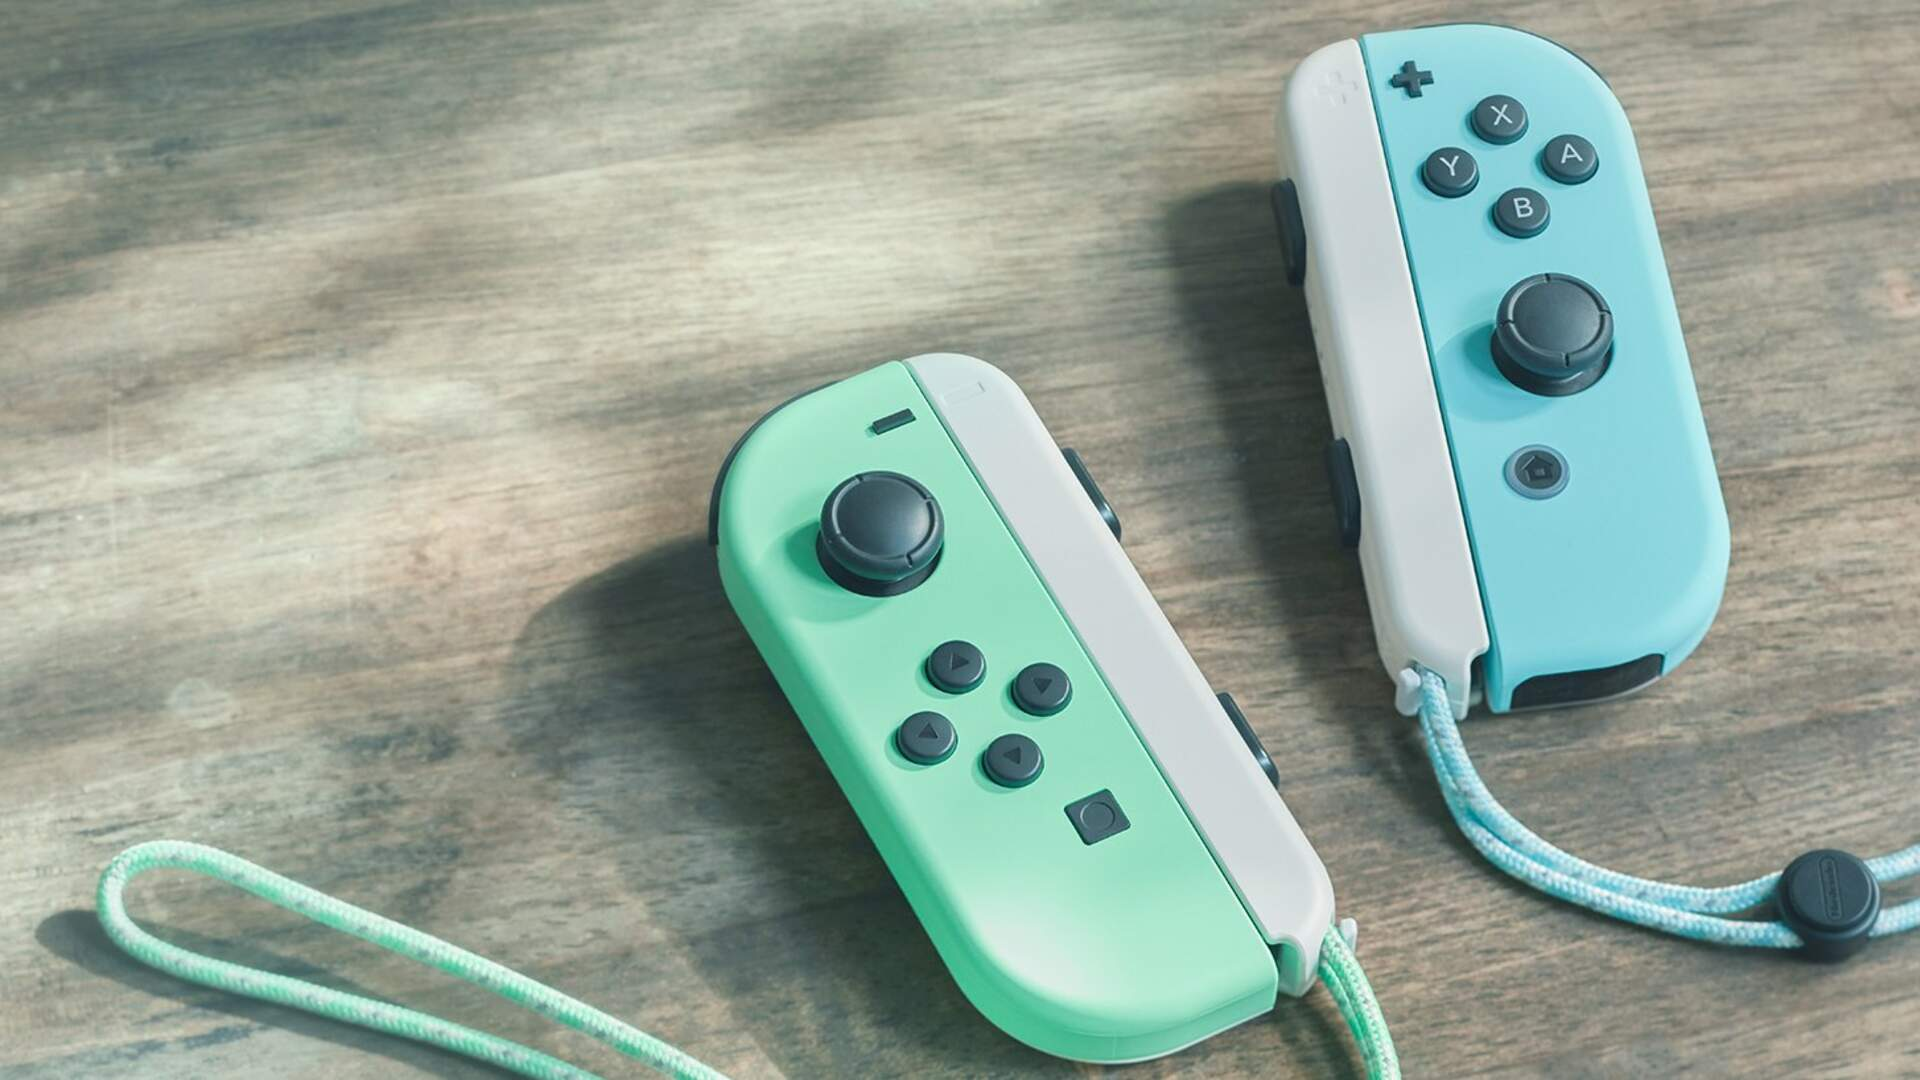 Those Animal Crossing Joy-Cons for the Switch Might be Sold Separately